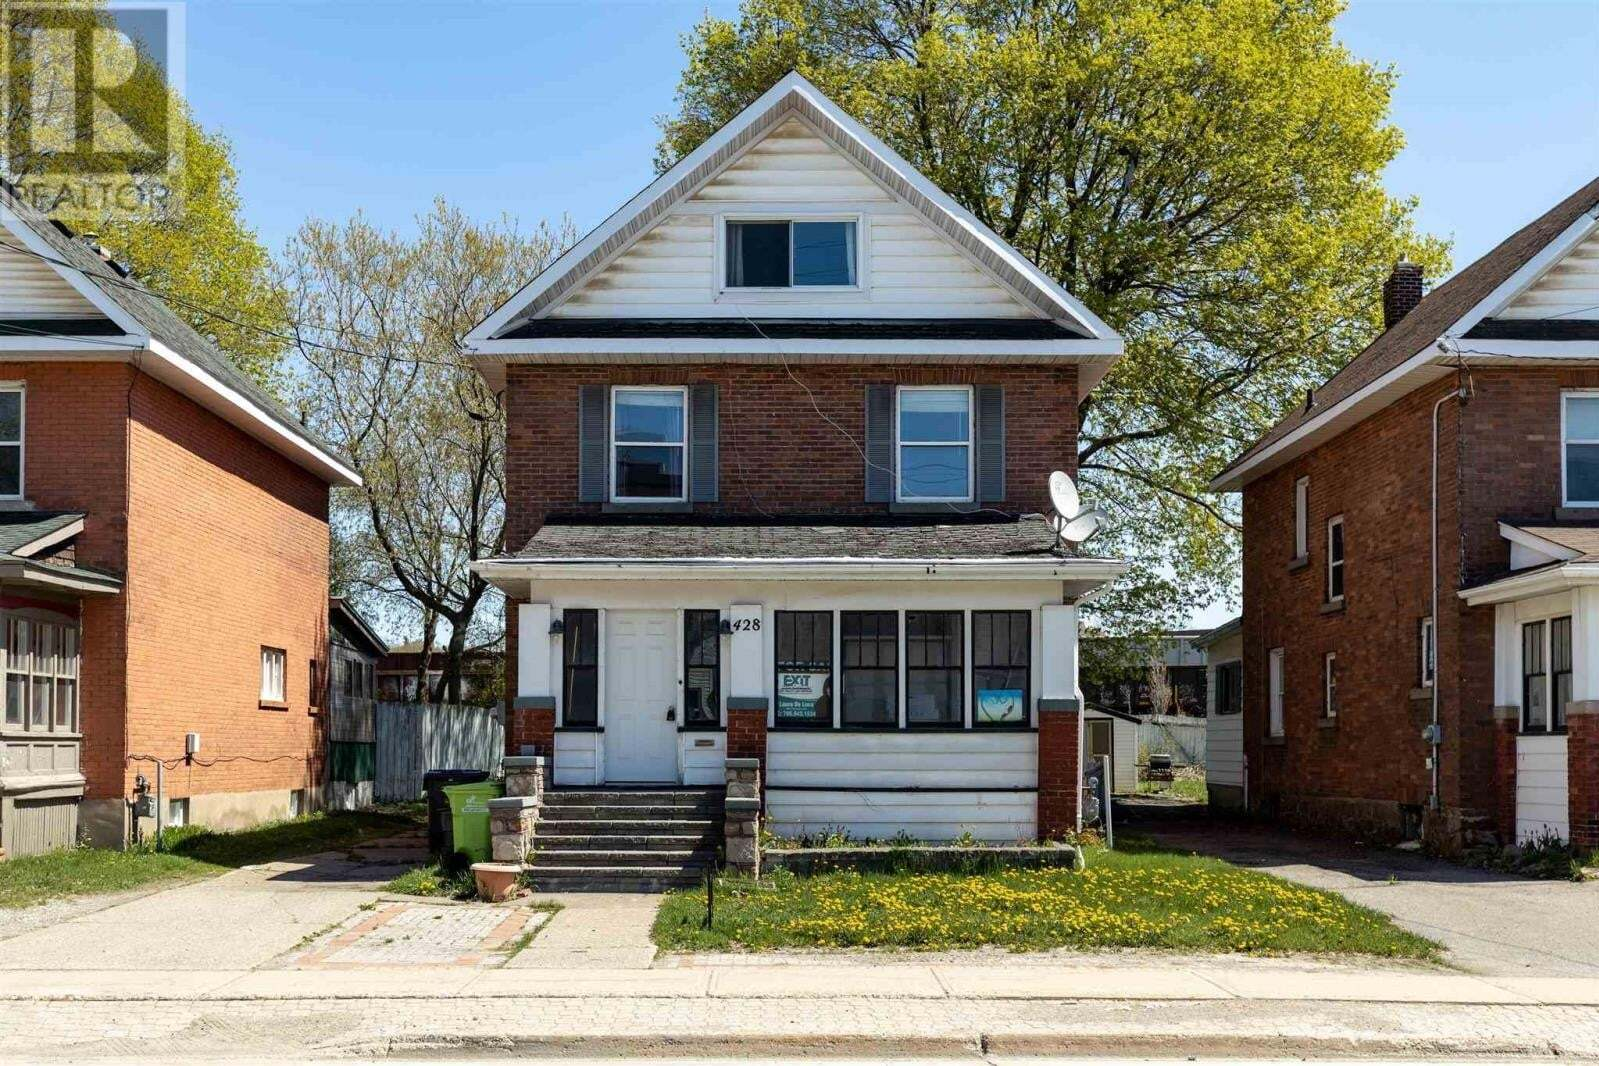 Townhouse for sale at 428 Wellington St E Sault Ste. Marie Ontario - MLS: SM128153